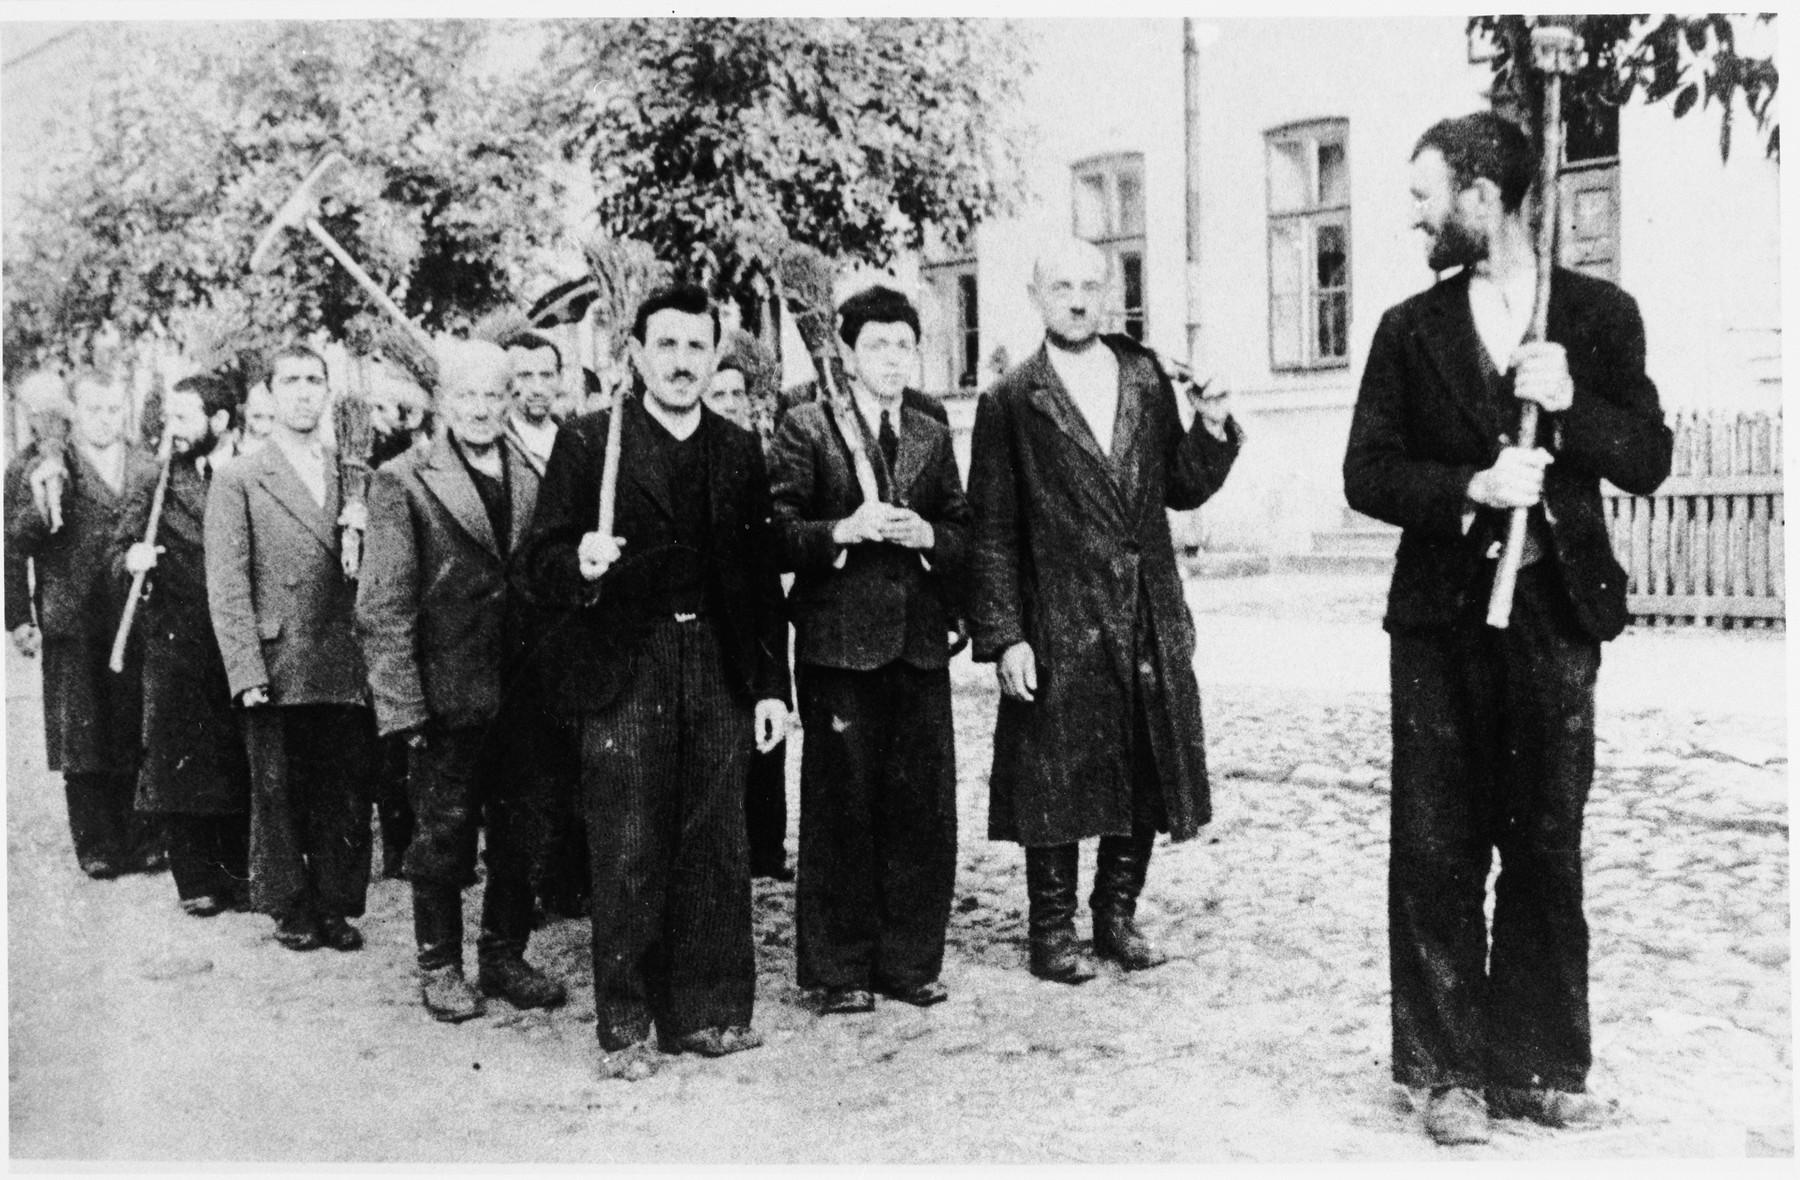 A column of Jews line up with brooms for forced labor in an unidentified ghetto.